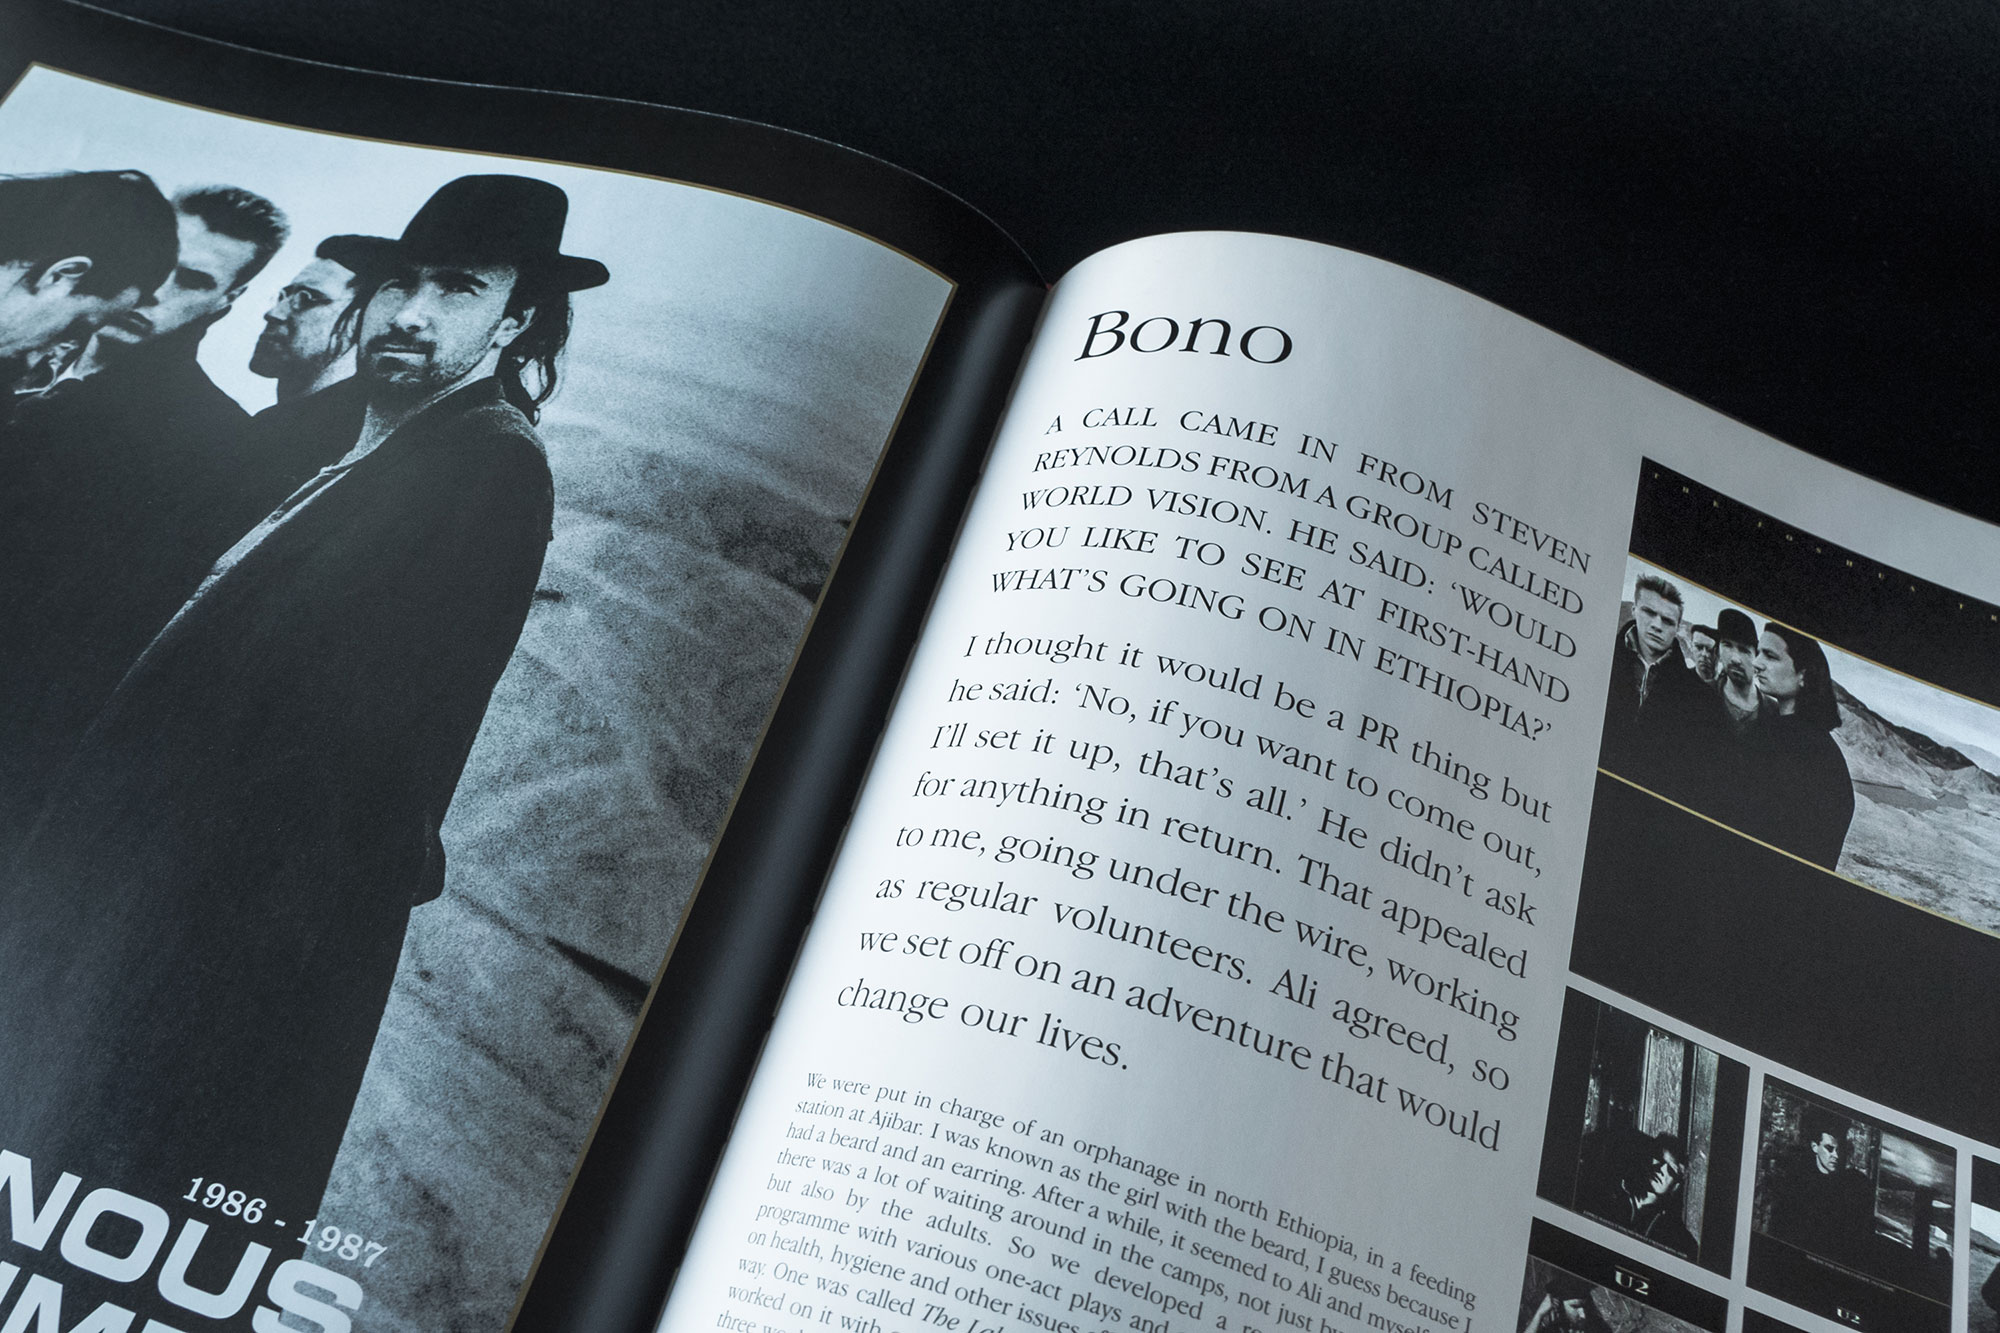 U2 by U2 Book Spread Graphic Design London Dublin The Joshua Tree